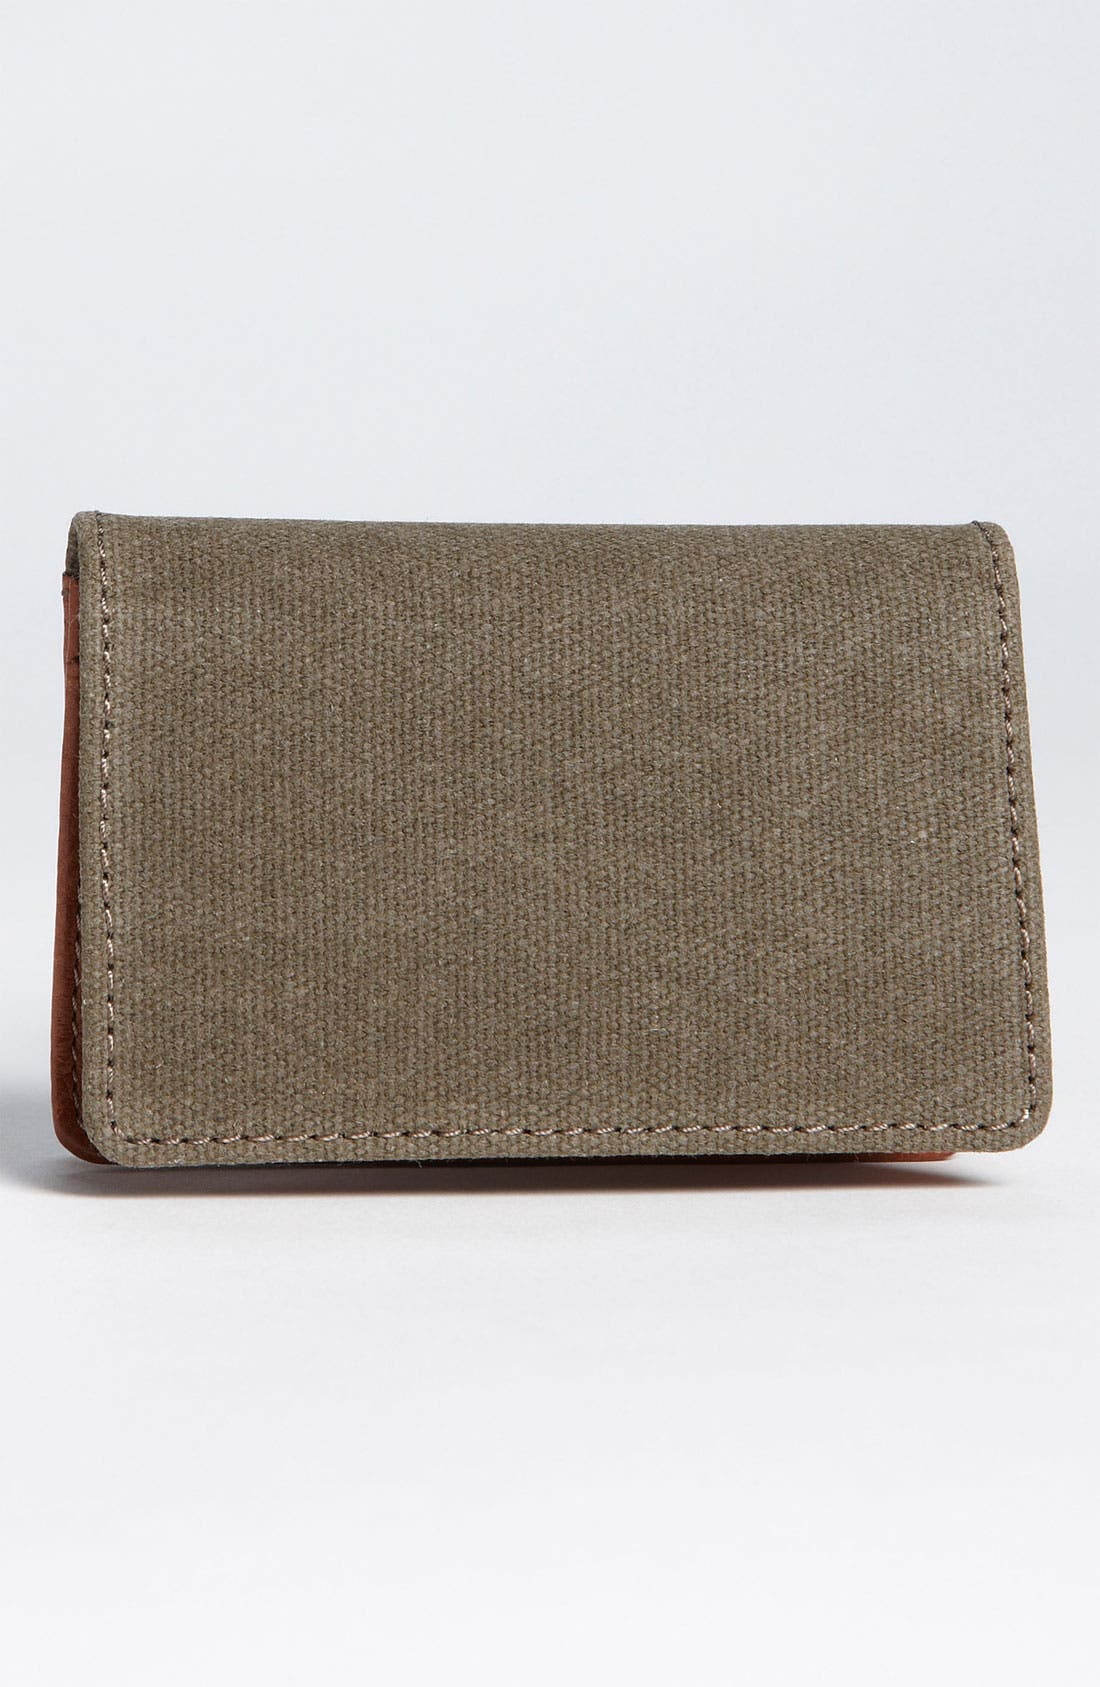 Alternate Image 1 Selected - Bosca Gusseted Card Case